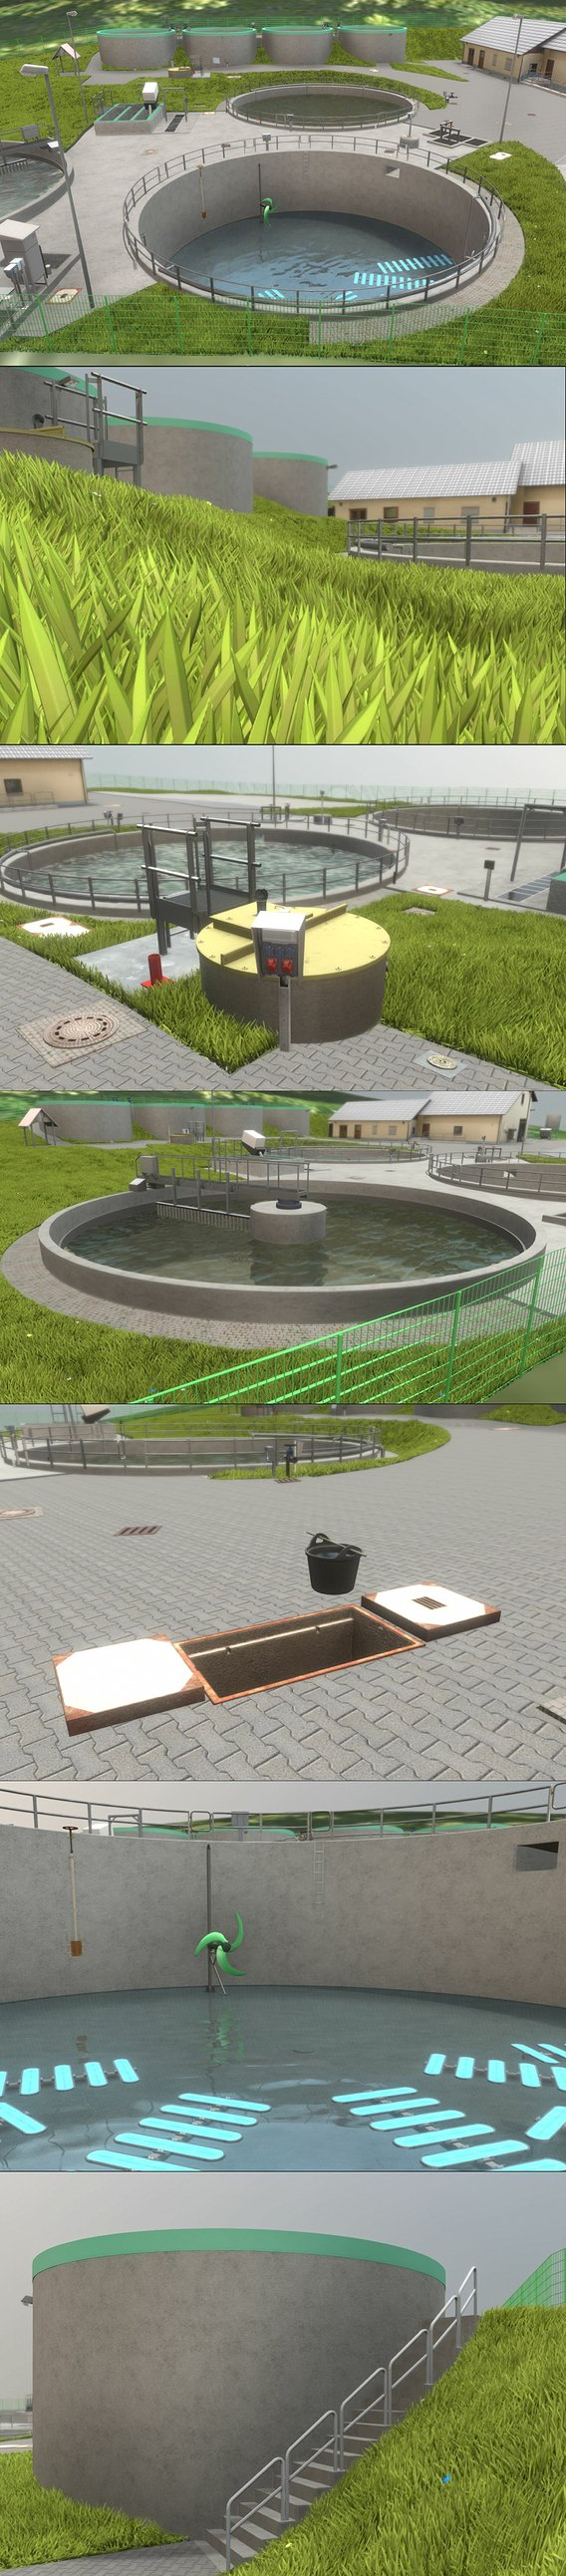 Wastewater Treatment Plant (Blender Eevee)